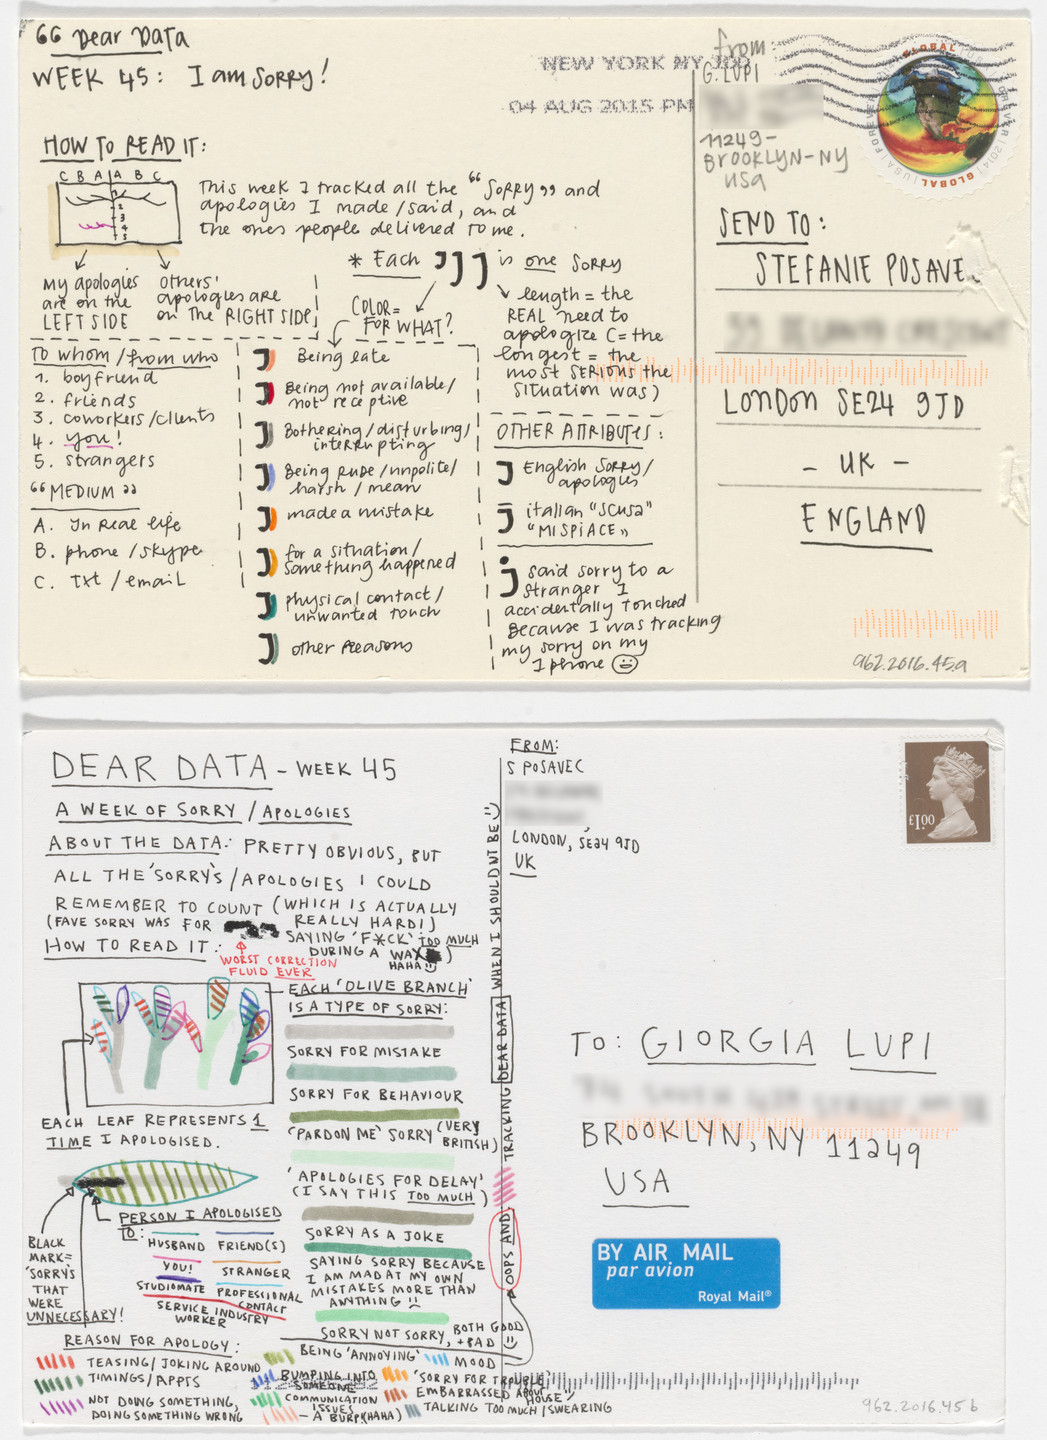 Giorgia Lupi, Stefanie Posavec. Dear Data: Week 45 (I Am Sorry / A Week of Sorry-Apologies). 2015